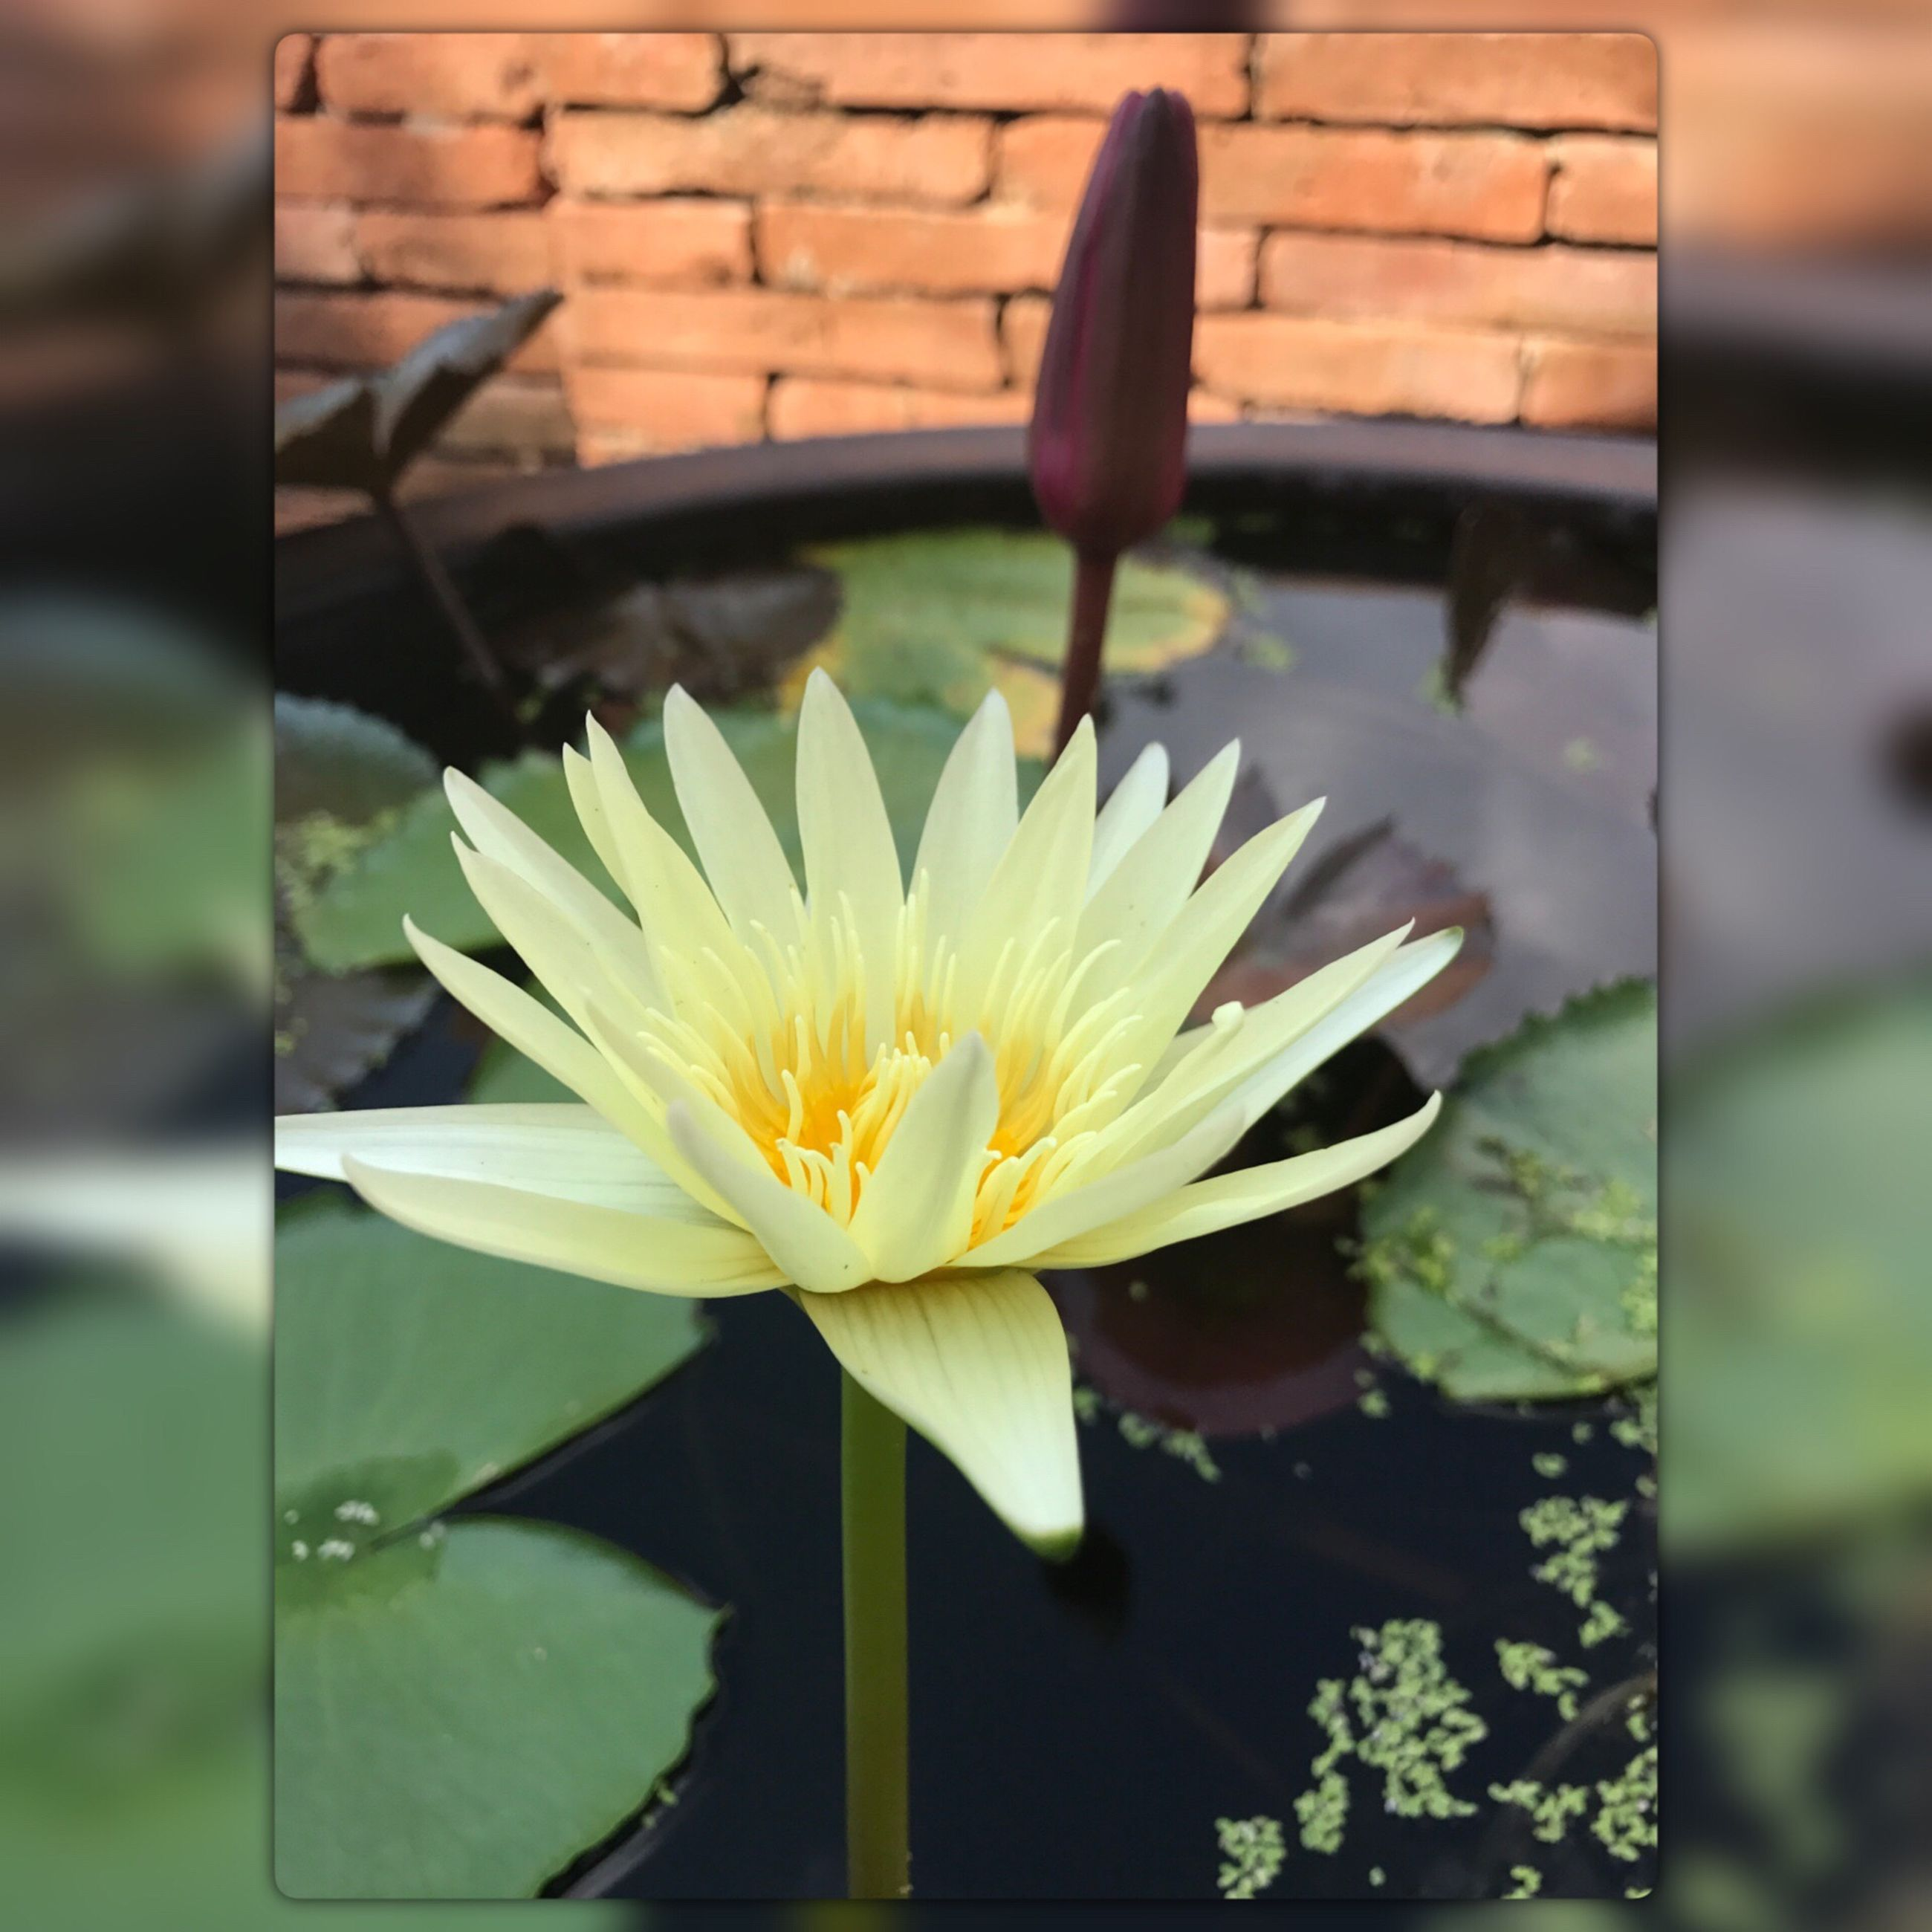 flower, freshness, fragility, petal, water, flower head, beauty in nature, water lily, lotus water lily, nature, lily pad, floating on water, leaf, lotus, lake, plant, close-up, growth, blooming, pollen, no people, day, outdoors